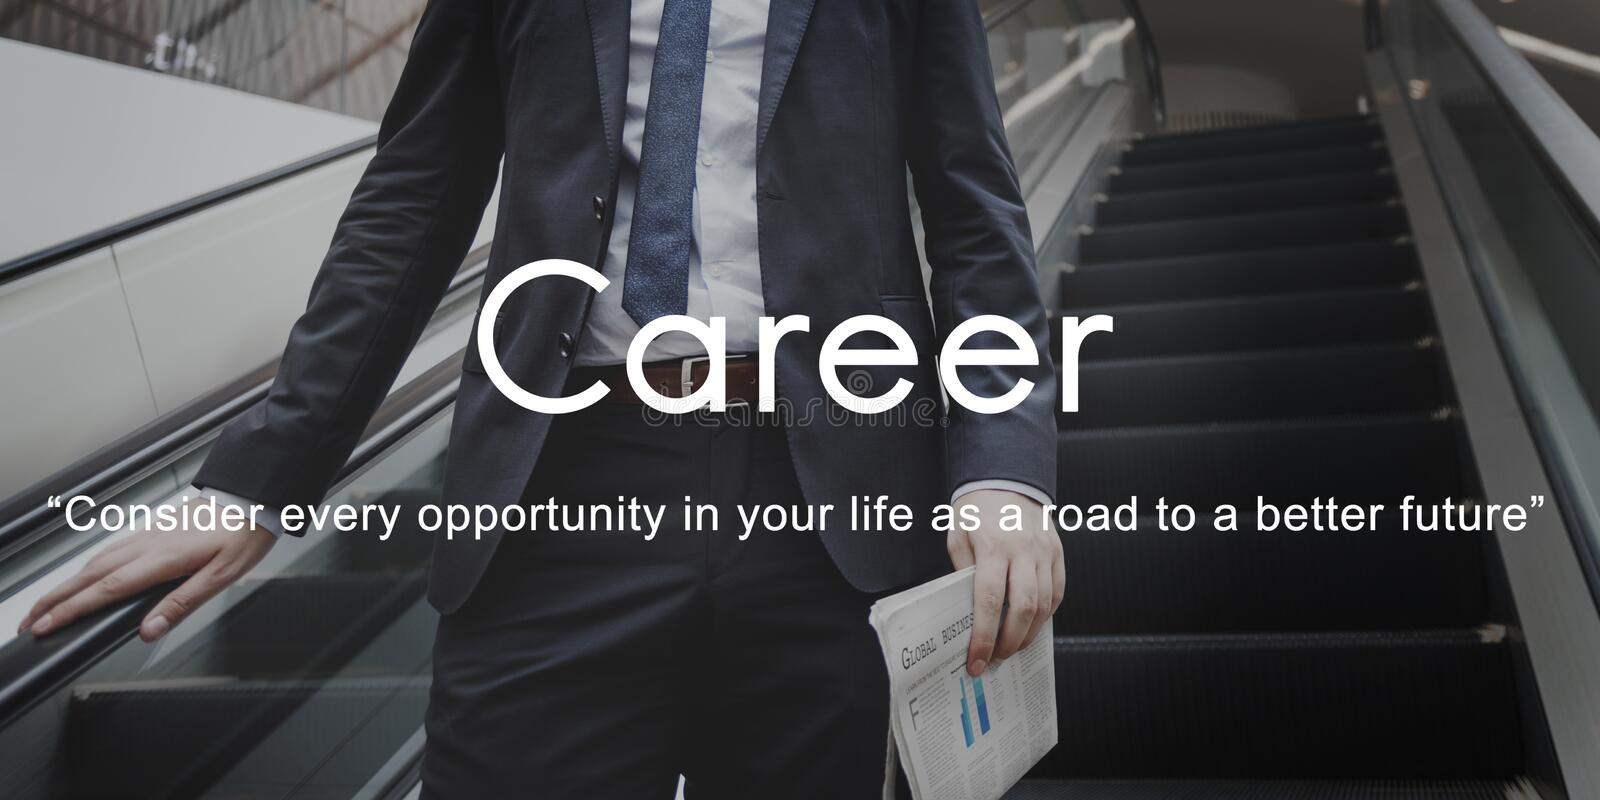 Career Hiring Human Resources Job Occupation Concept royalty free stock images